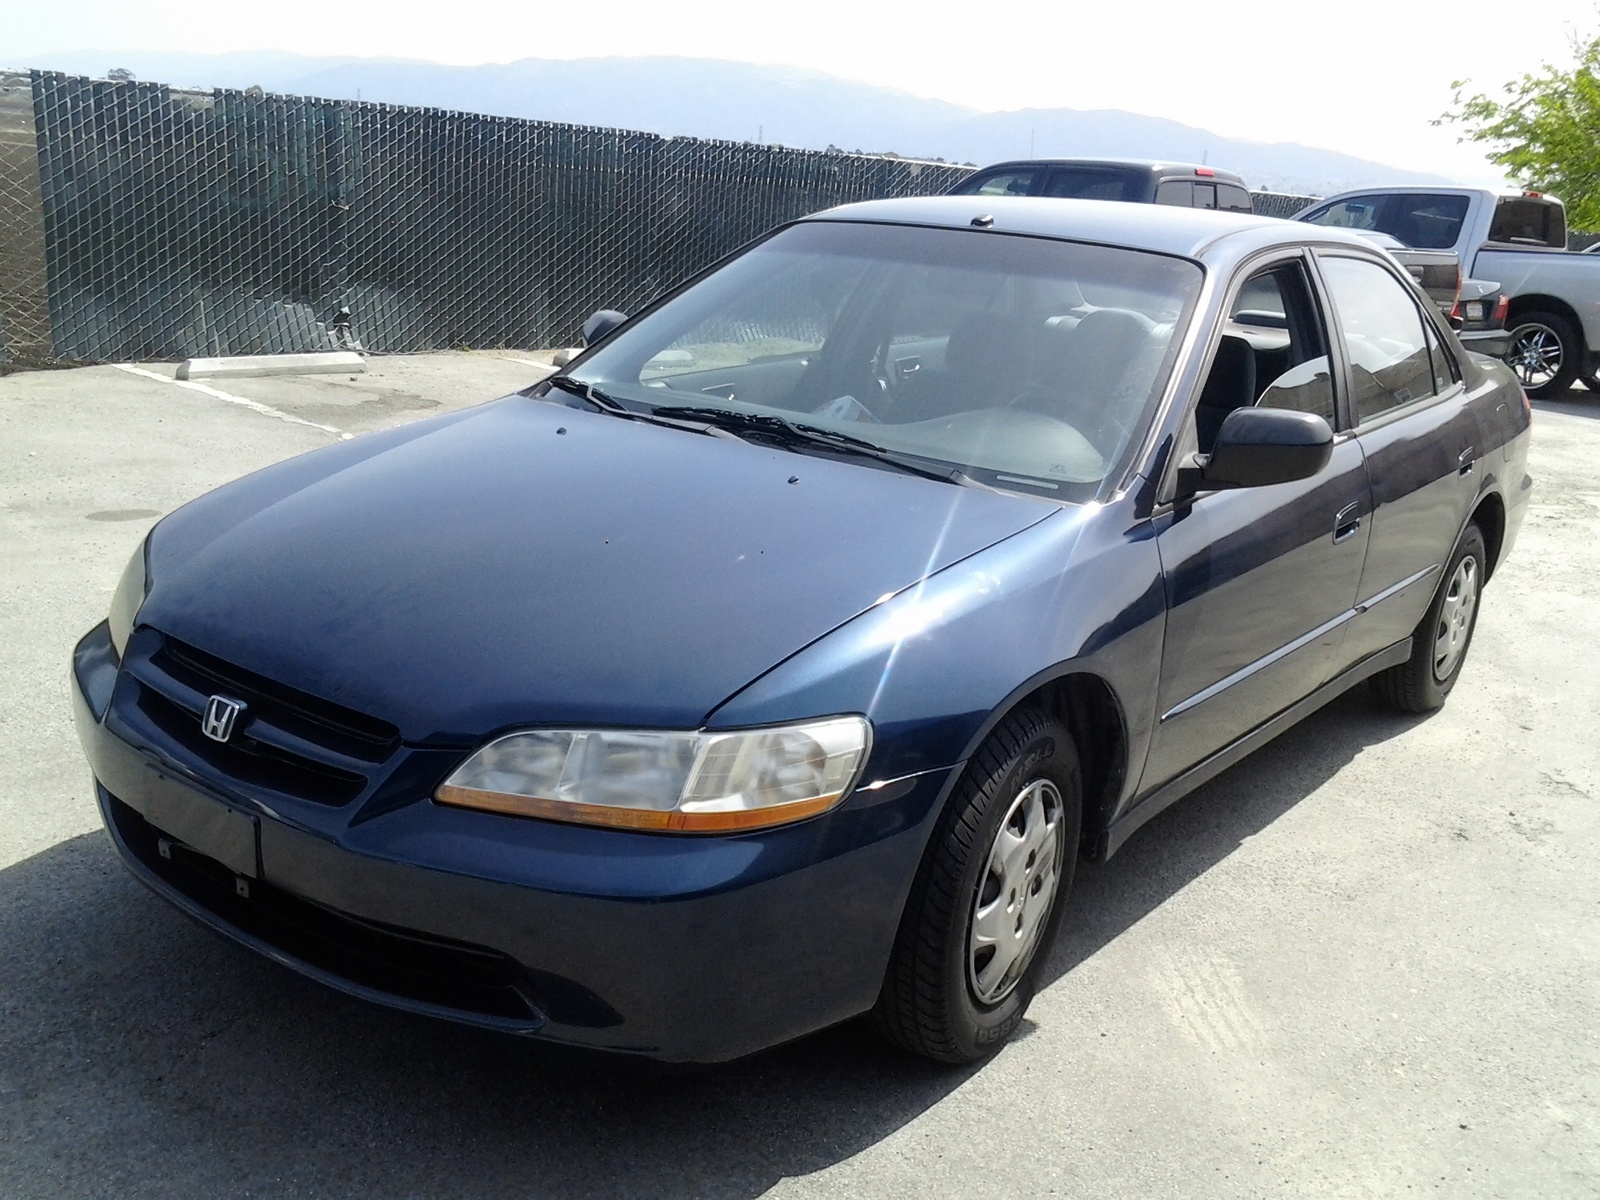 Picture of 2000 Honda Accord DX, exterior